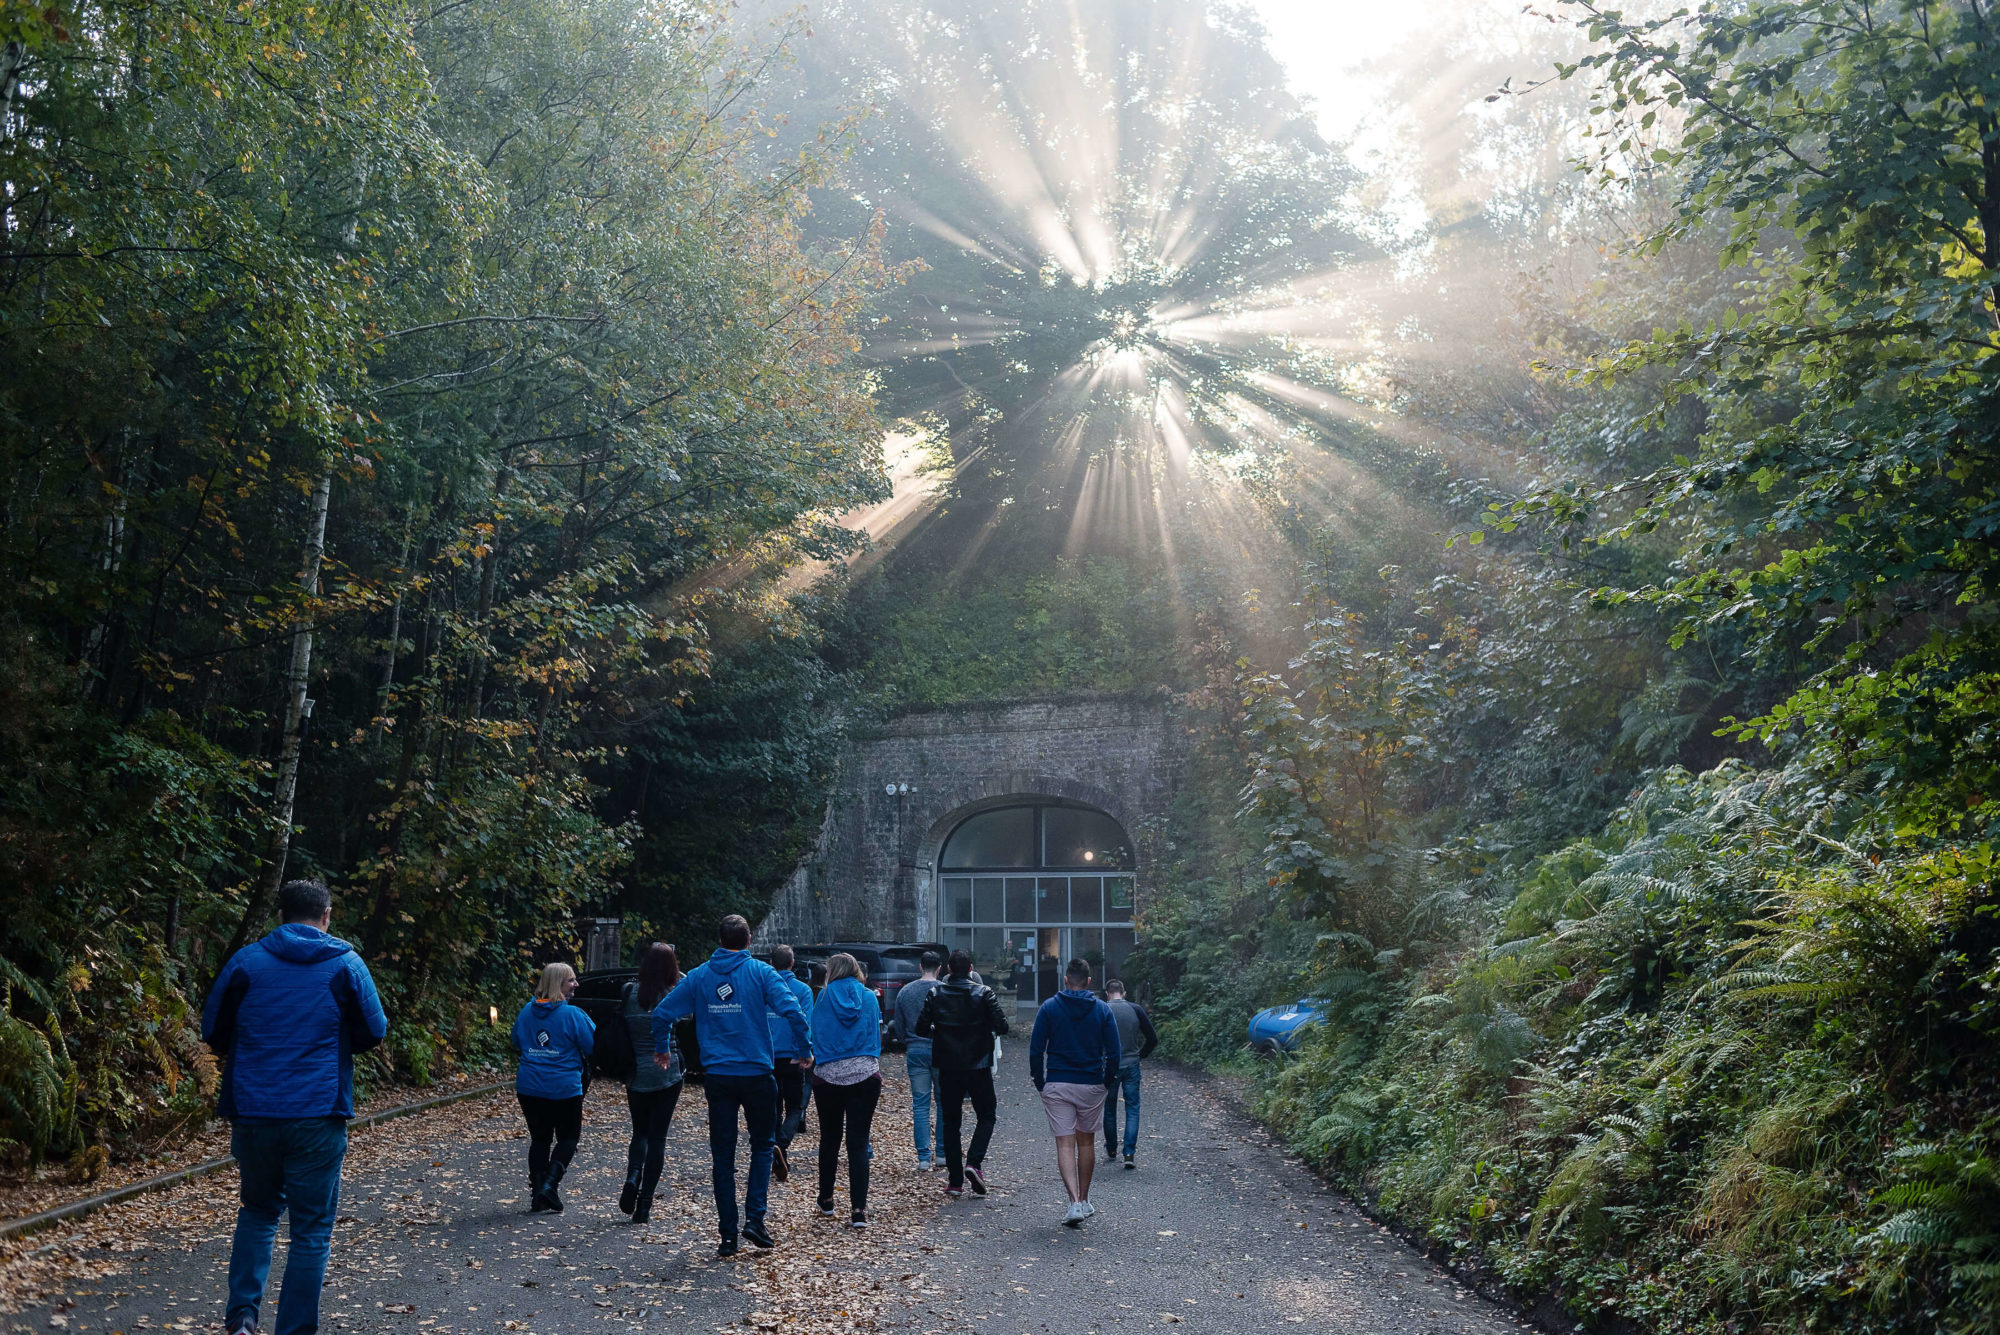 The Composite Profiles team approaching The Tunnel in Dorset with beautiful morning rays of sun shining through the trees